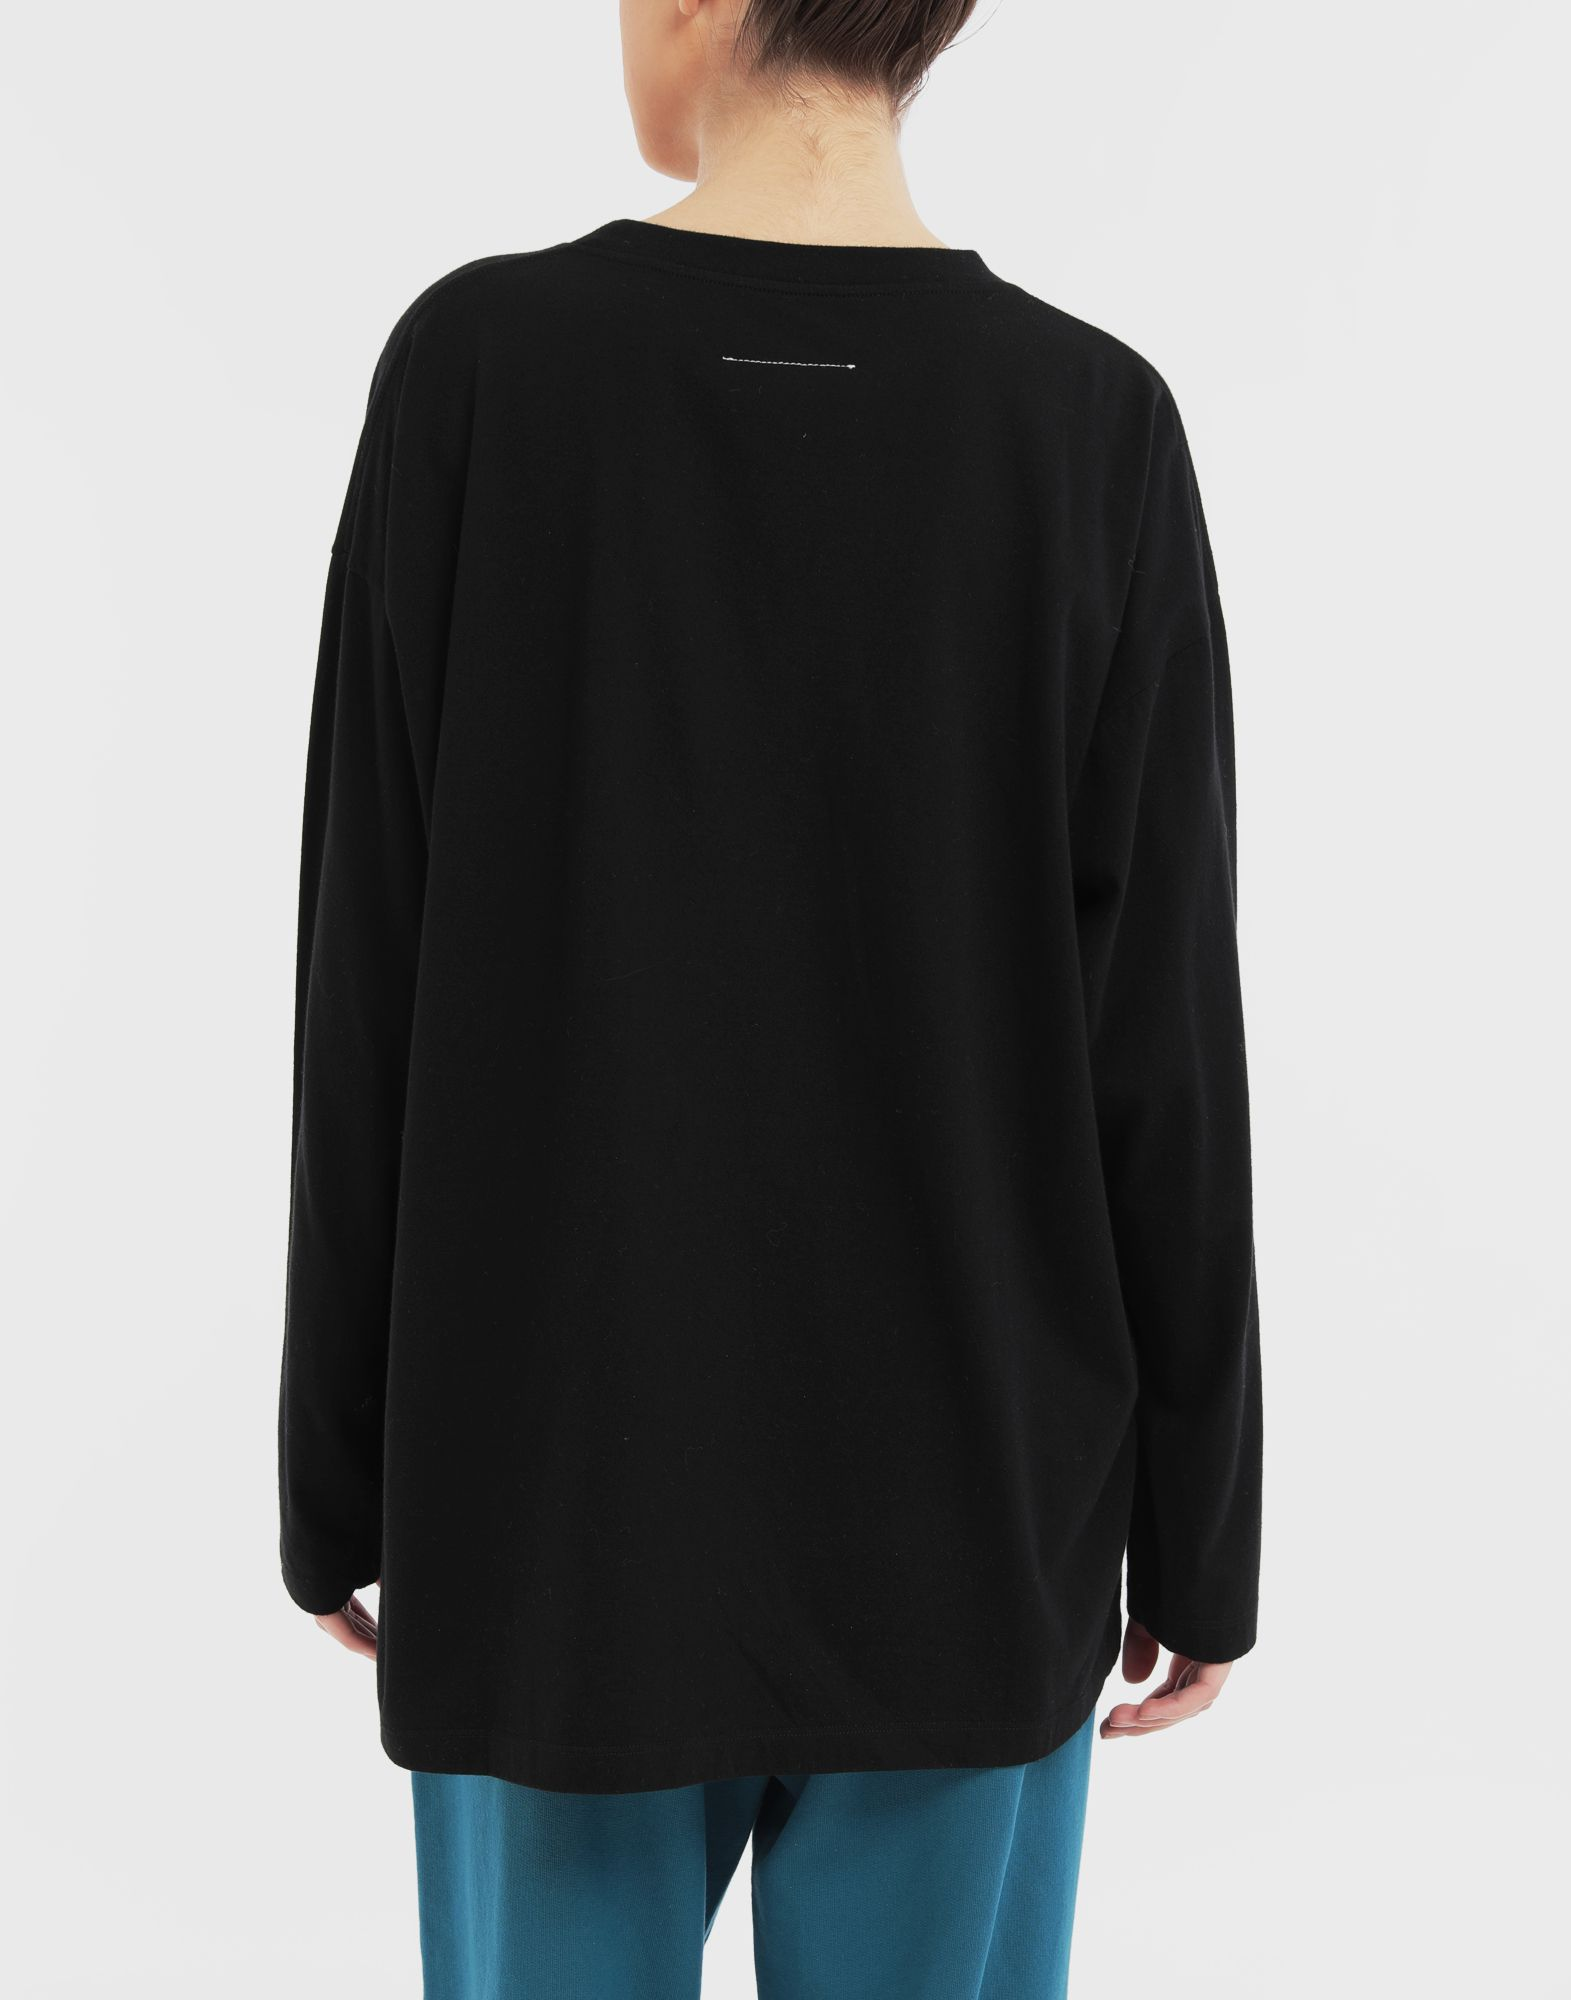 MM6 MAISON MARGIELA 'Humans' sweatshirt Long sleeve t-shirt Woman e